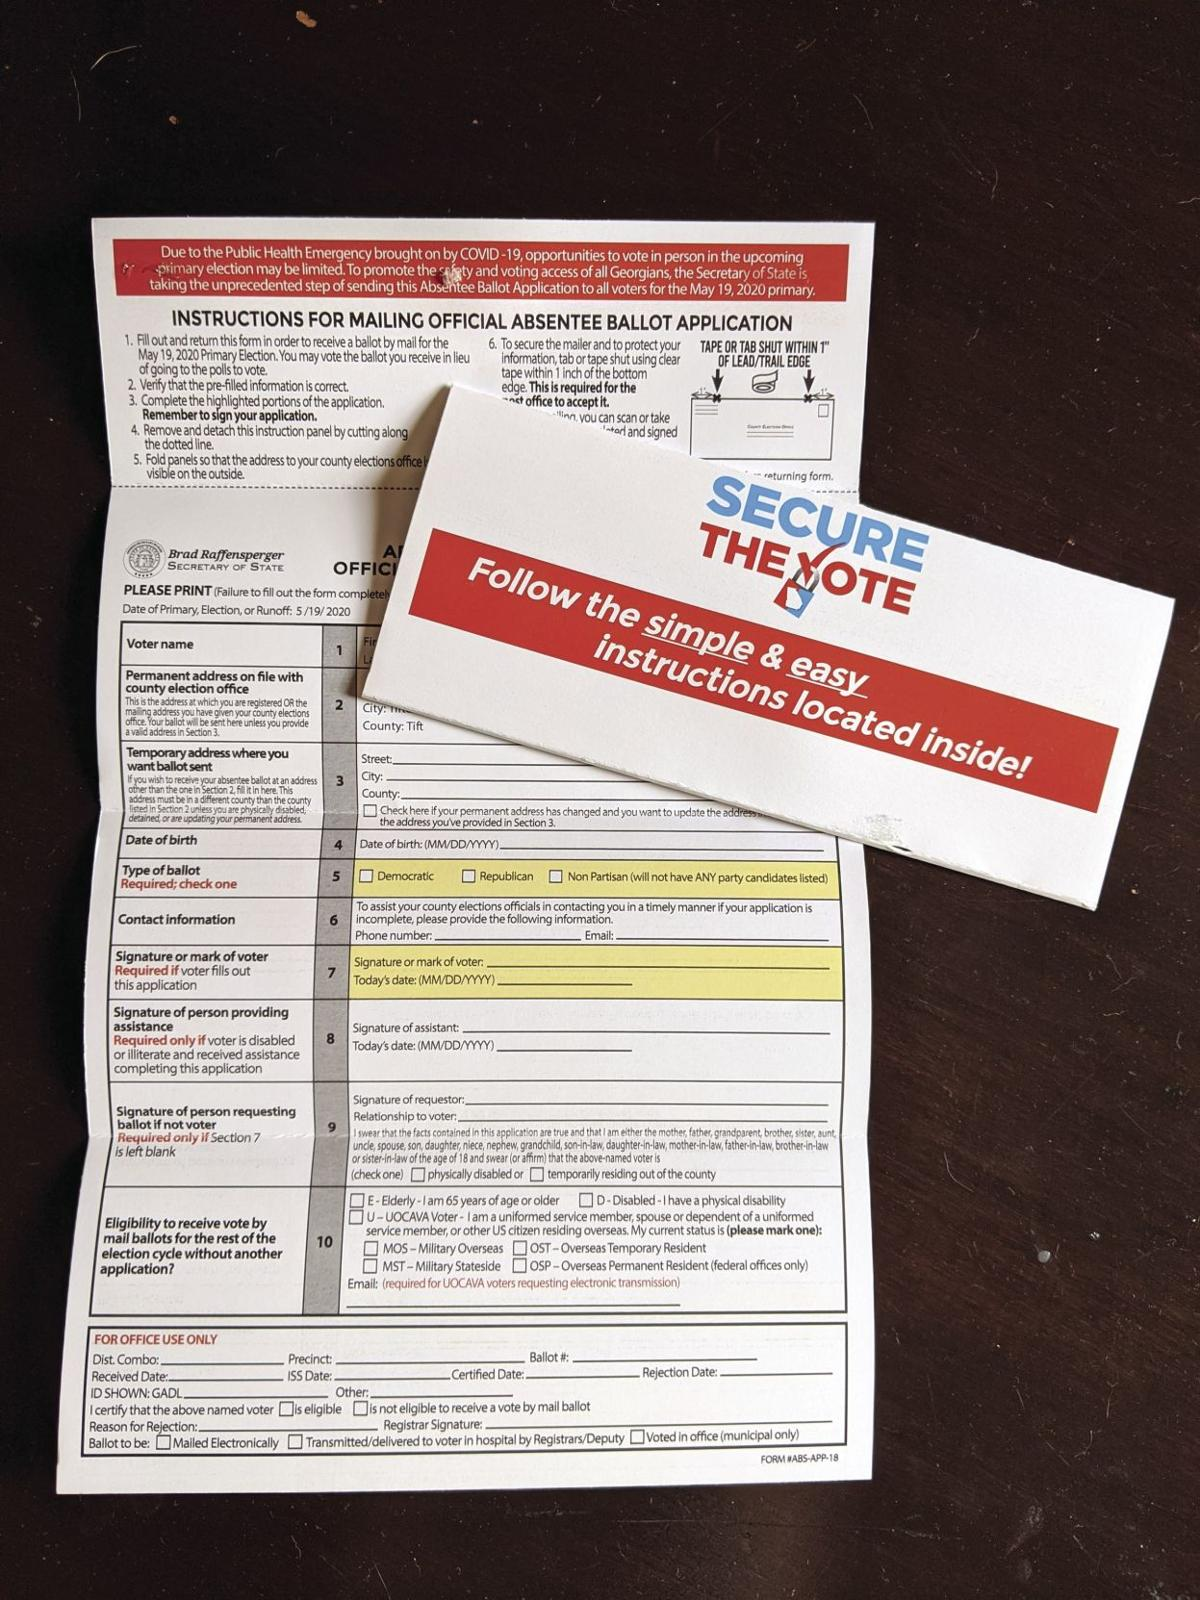 Voters across the state have begun receiving absentee ballot applications in the mail.